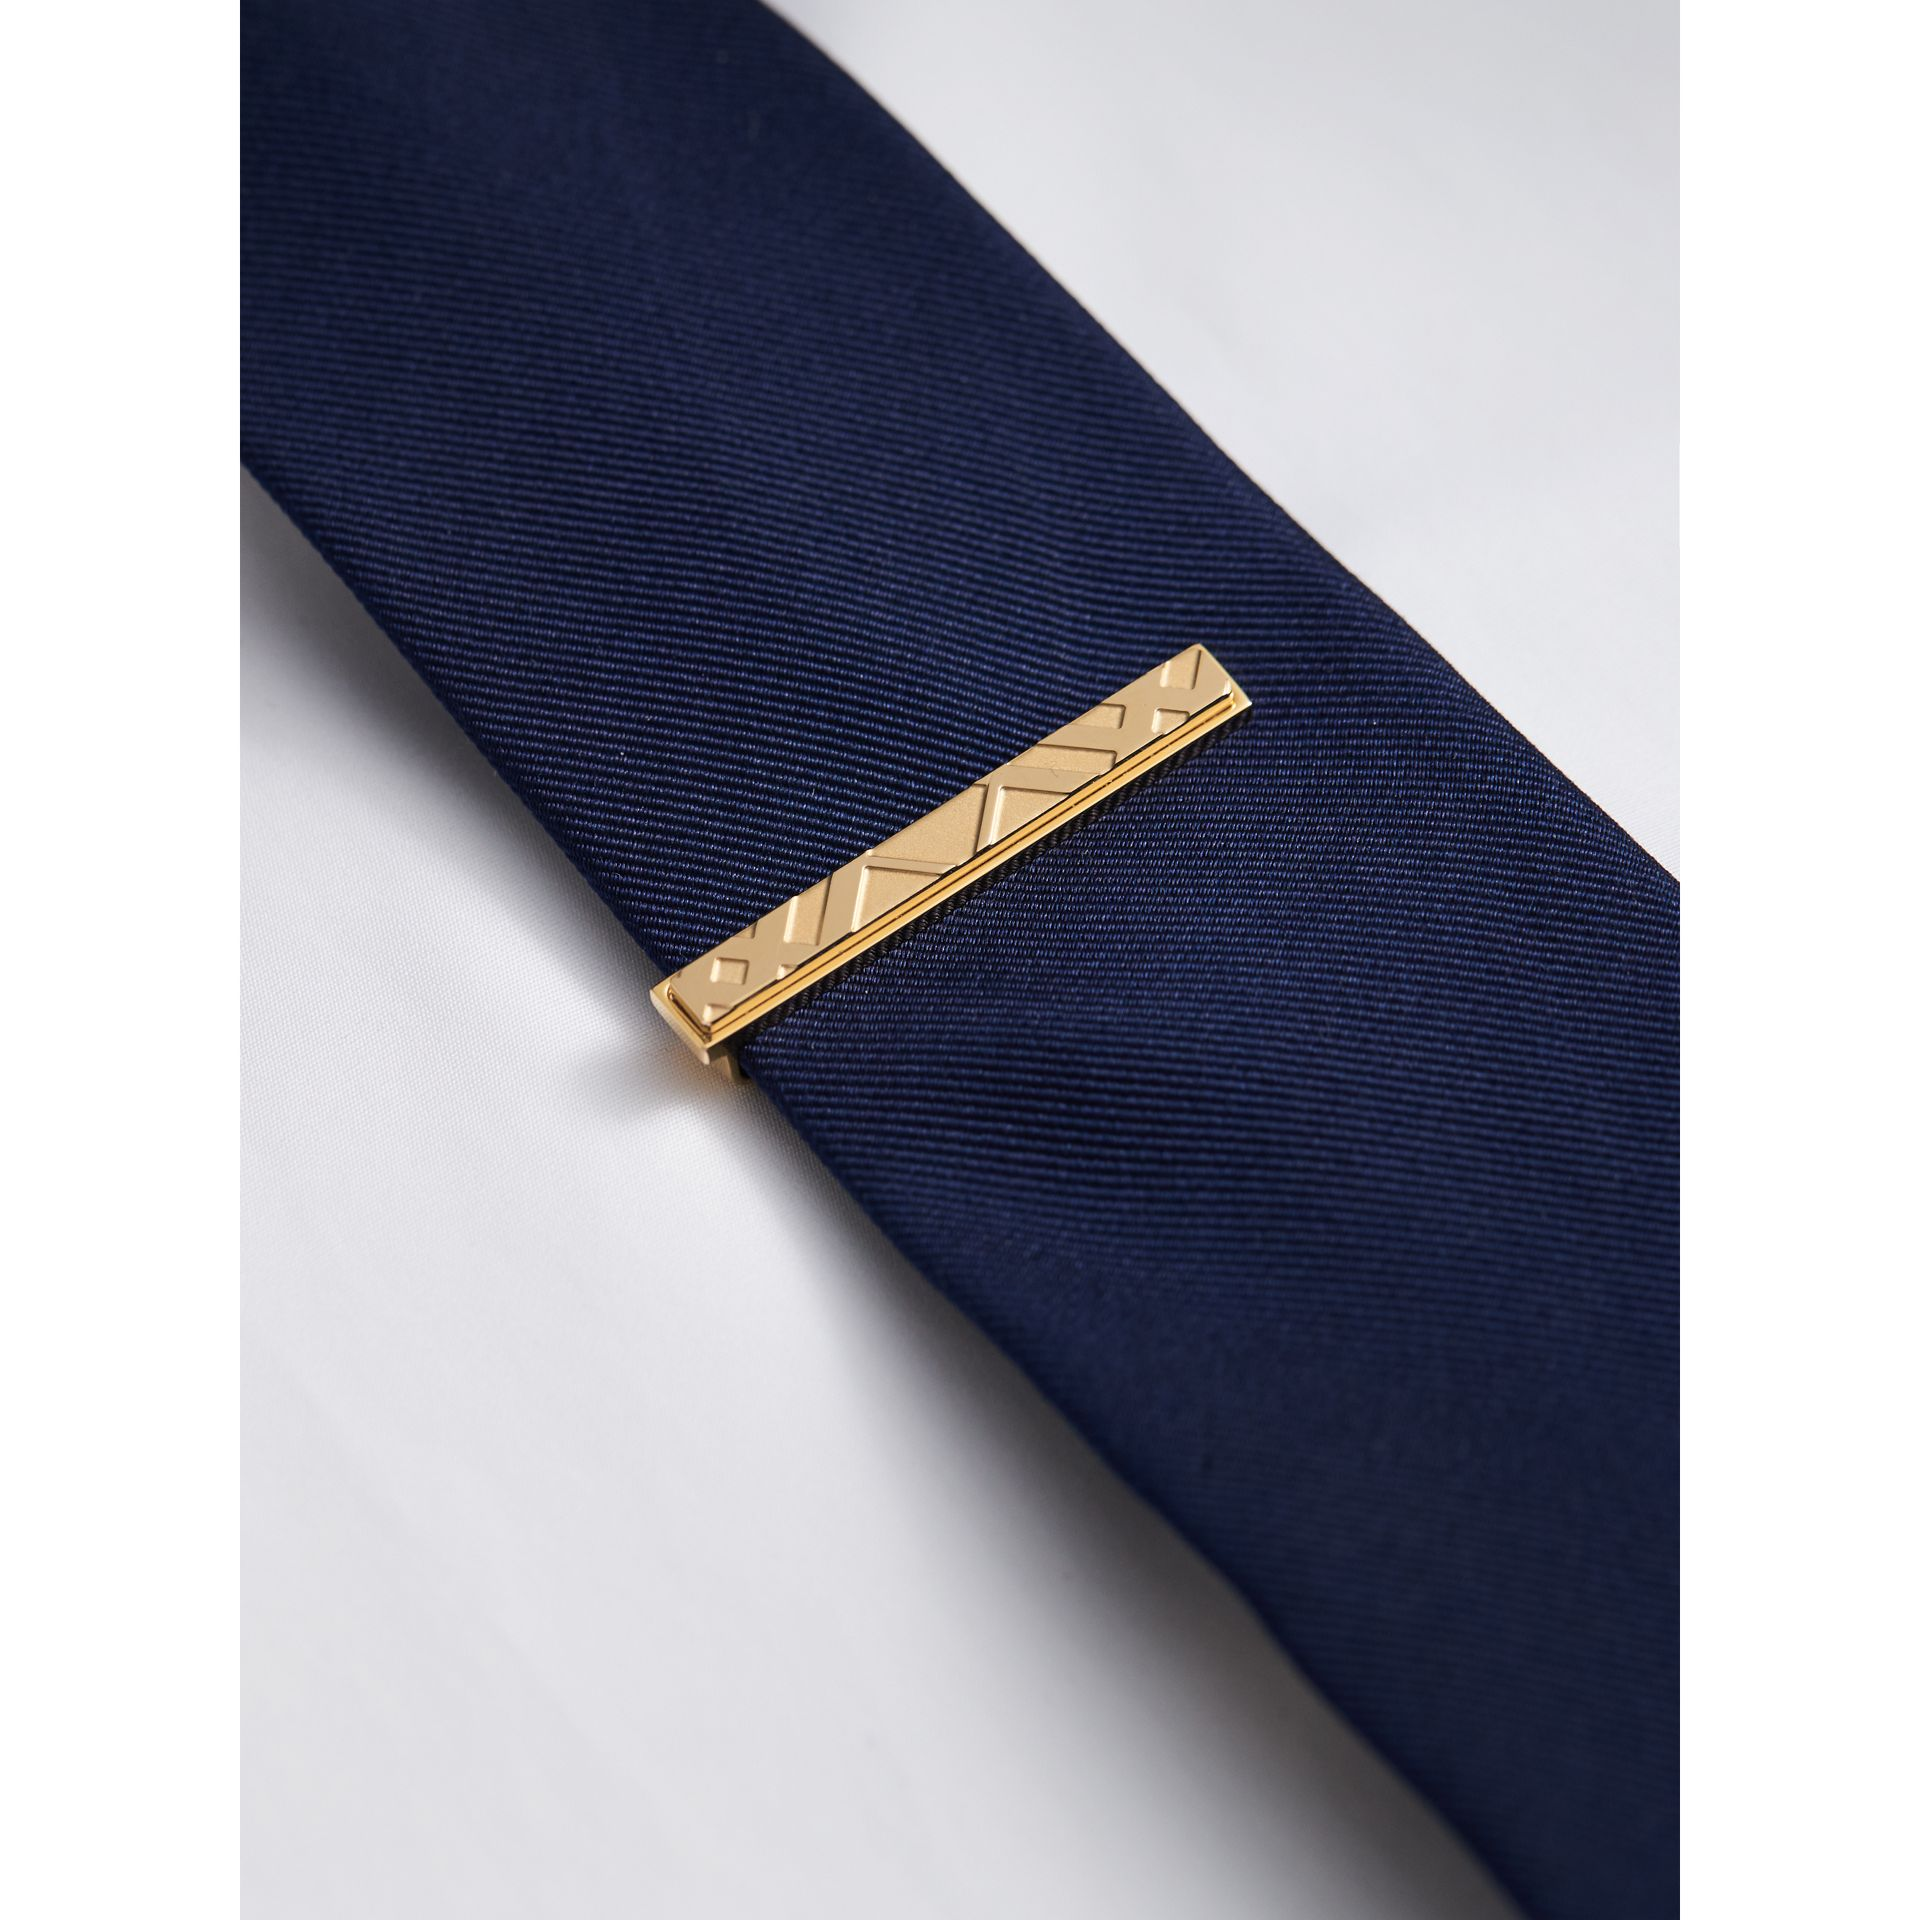 Check-engraved Tie Bar in Pale Gold - Men | Burberry Hong Kong - gallery image 2